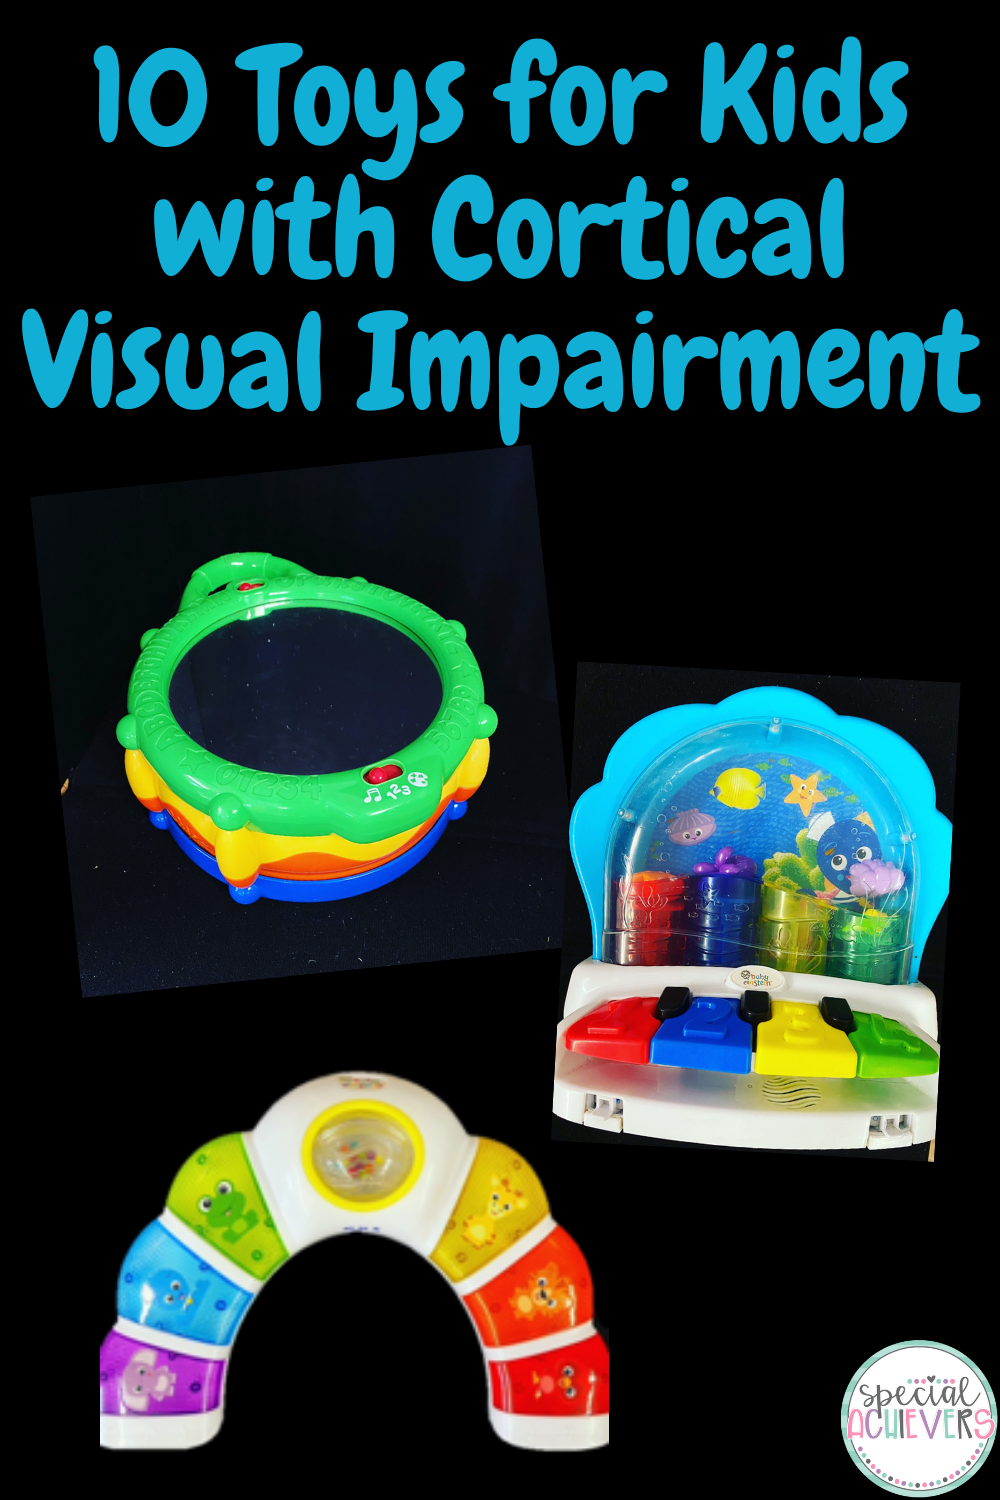 """The text at the top says """"10 Toys for Kids with Cortical Visual Impairment."""" Below the title, a drum, piano, and light up rainbow are shown."""